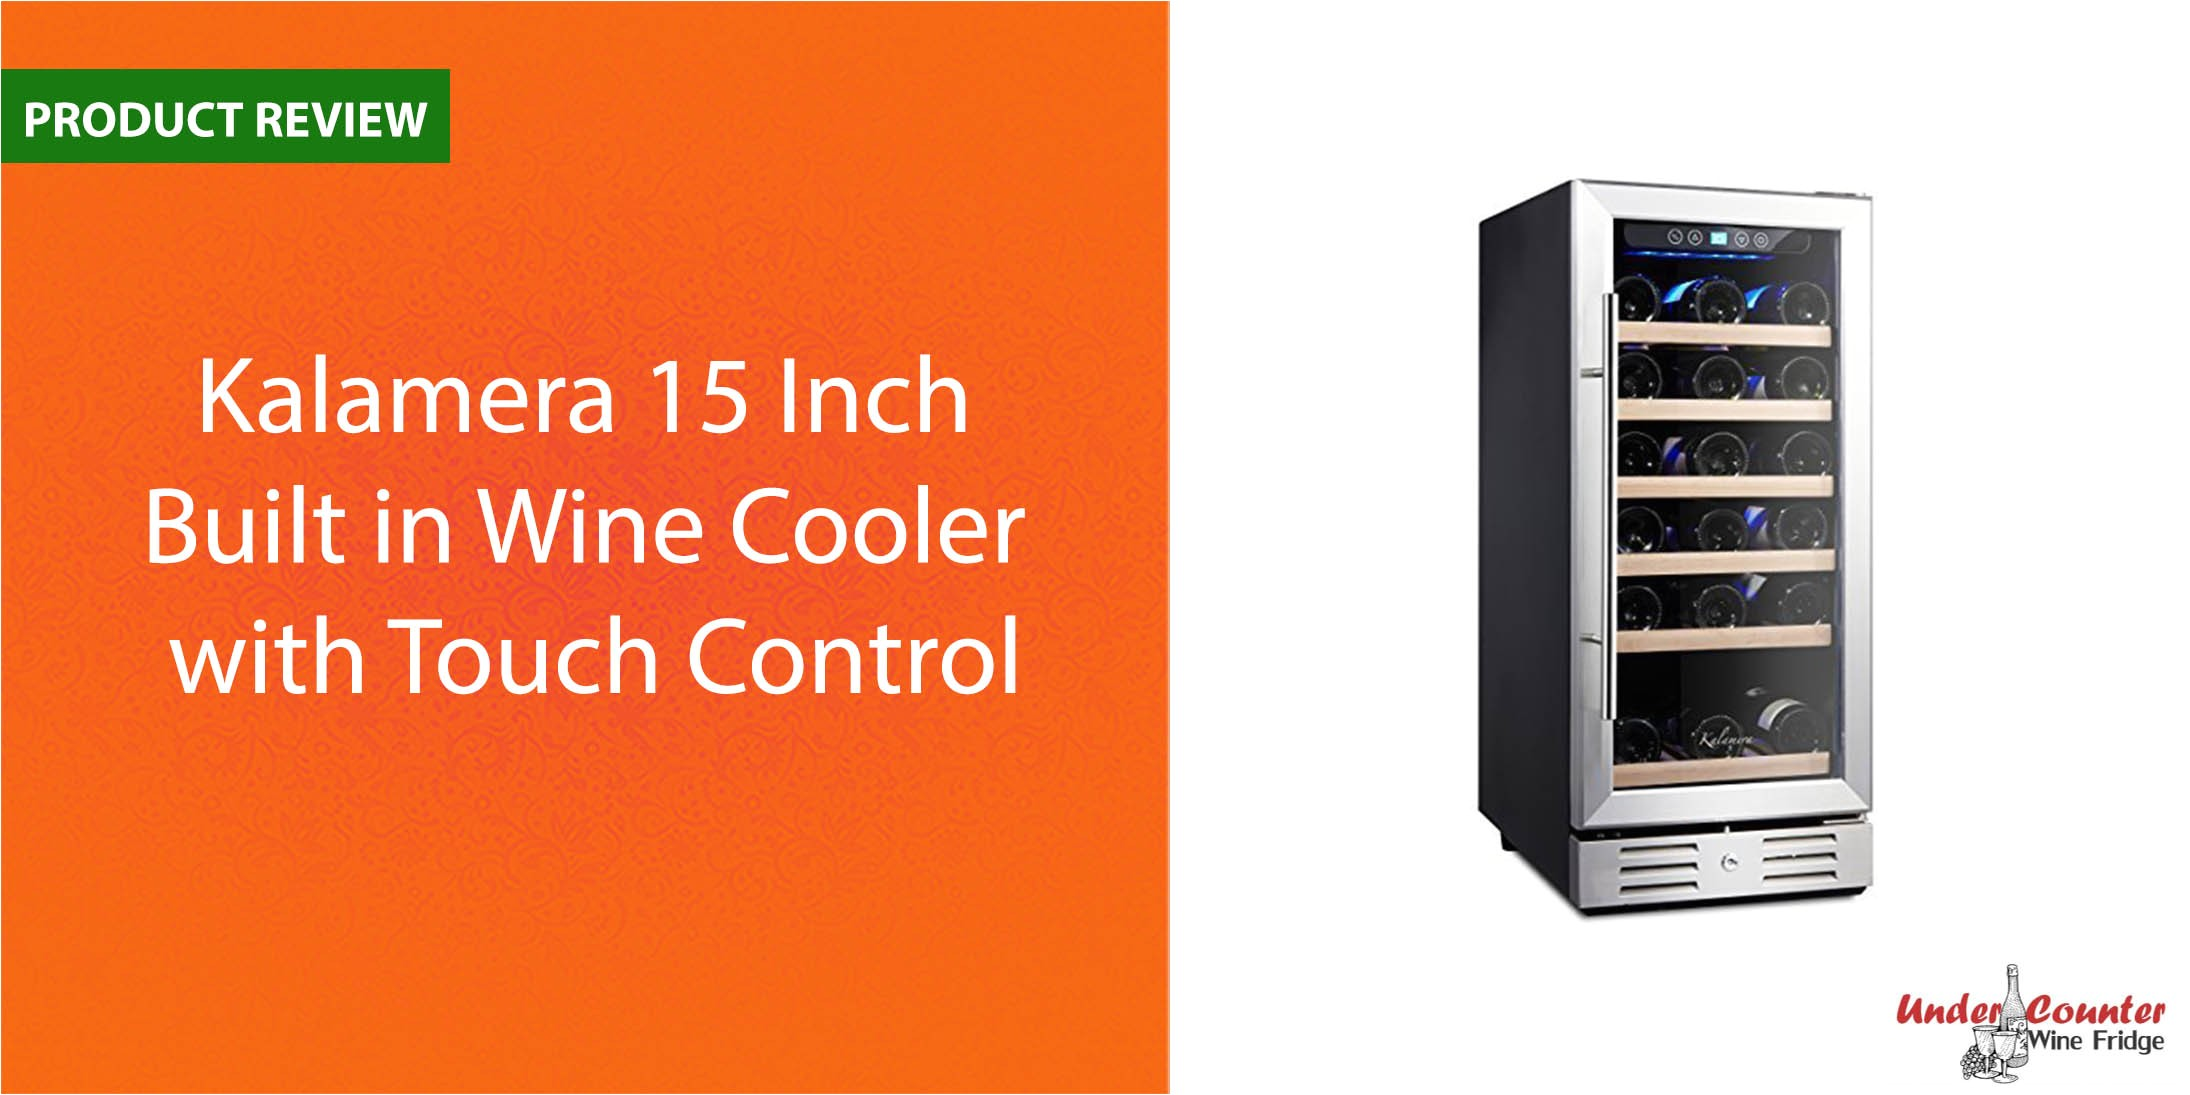 kalamera 15 inch built in wine cooler 30 bottle